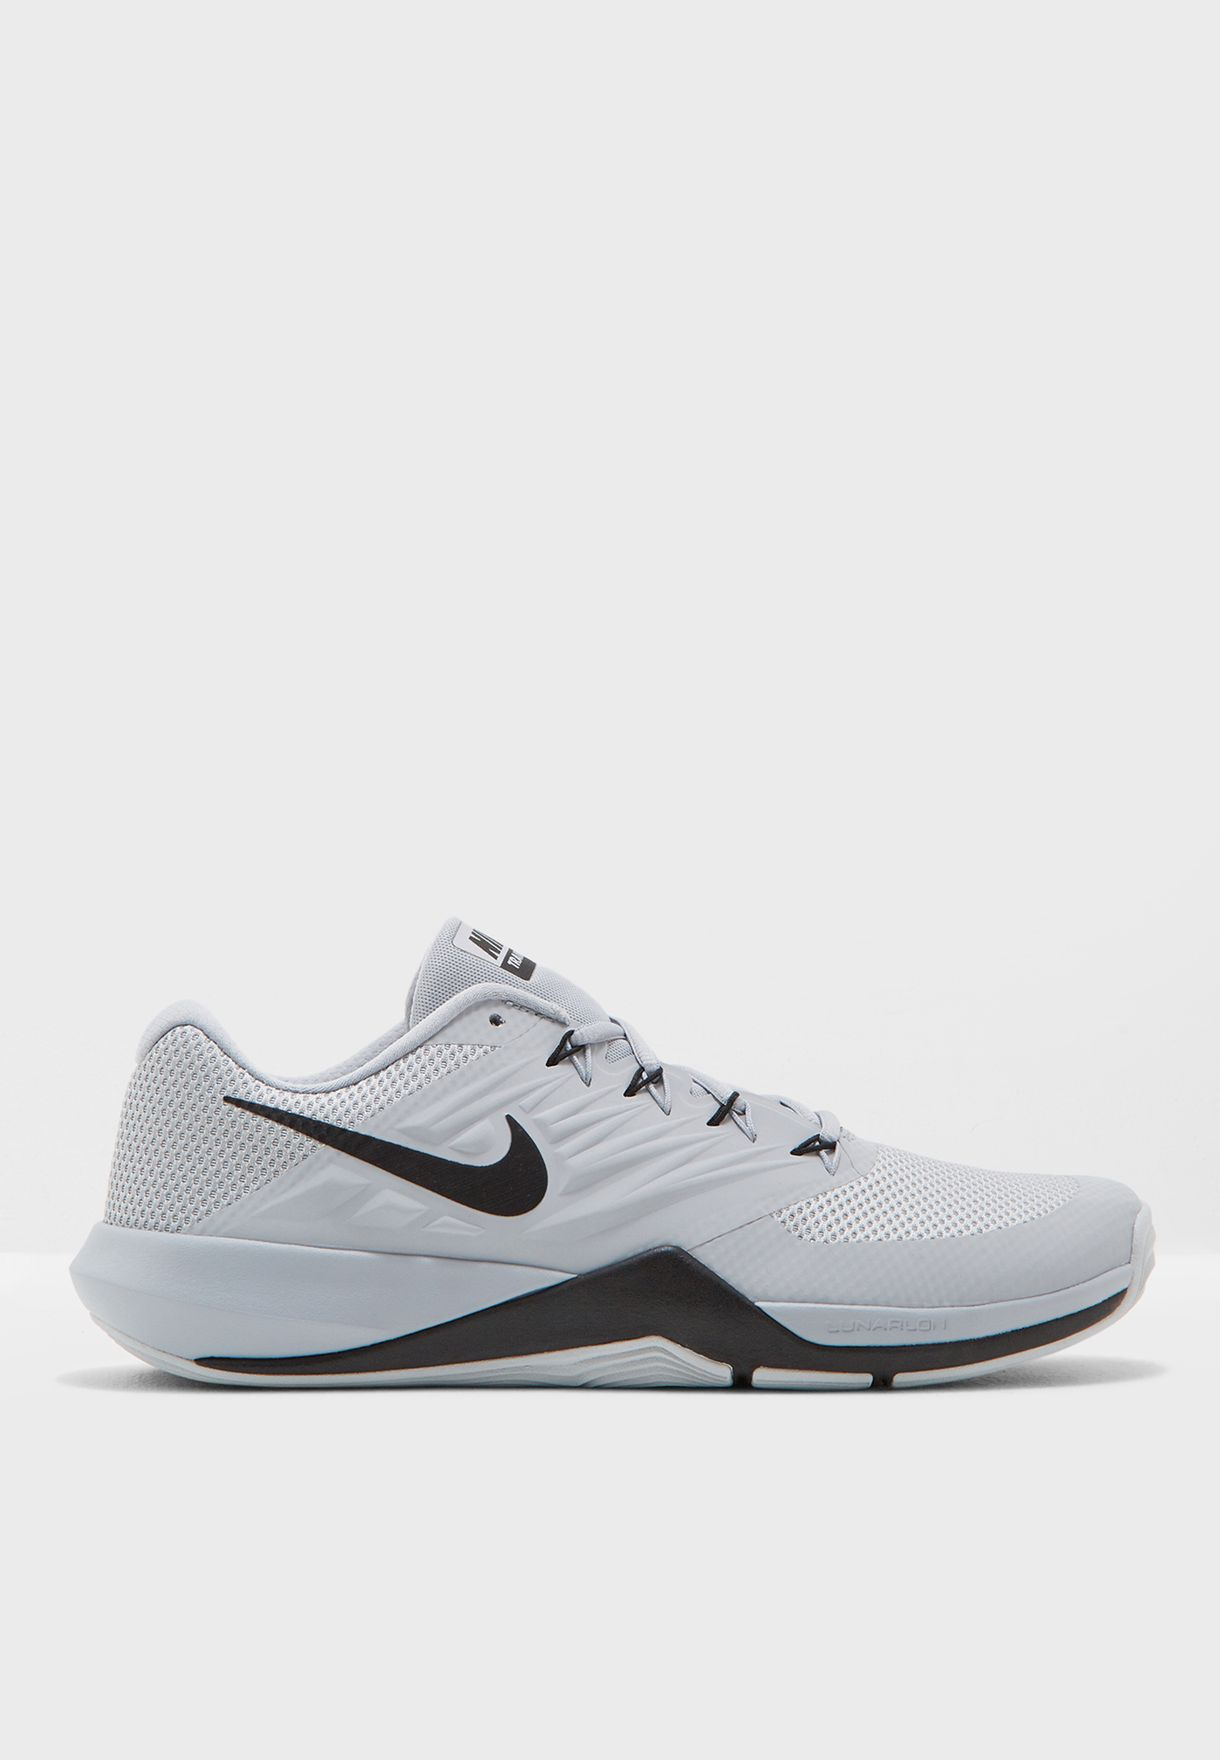 78bc85c8531a2 Shop Nike grey Lunar Prime Iron II 908969-010 for Men in UAE ...